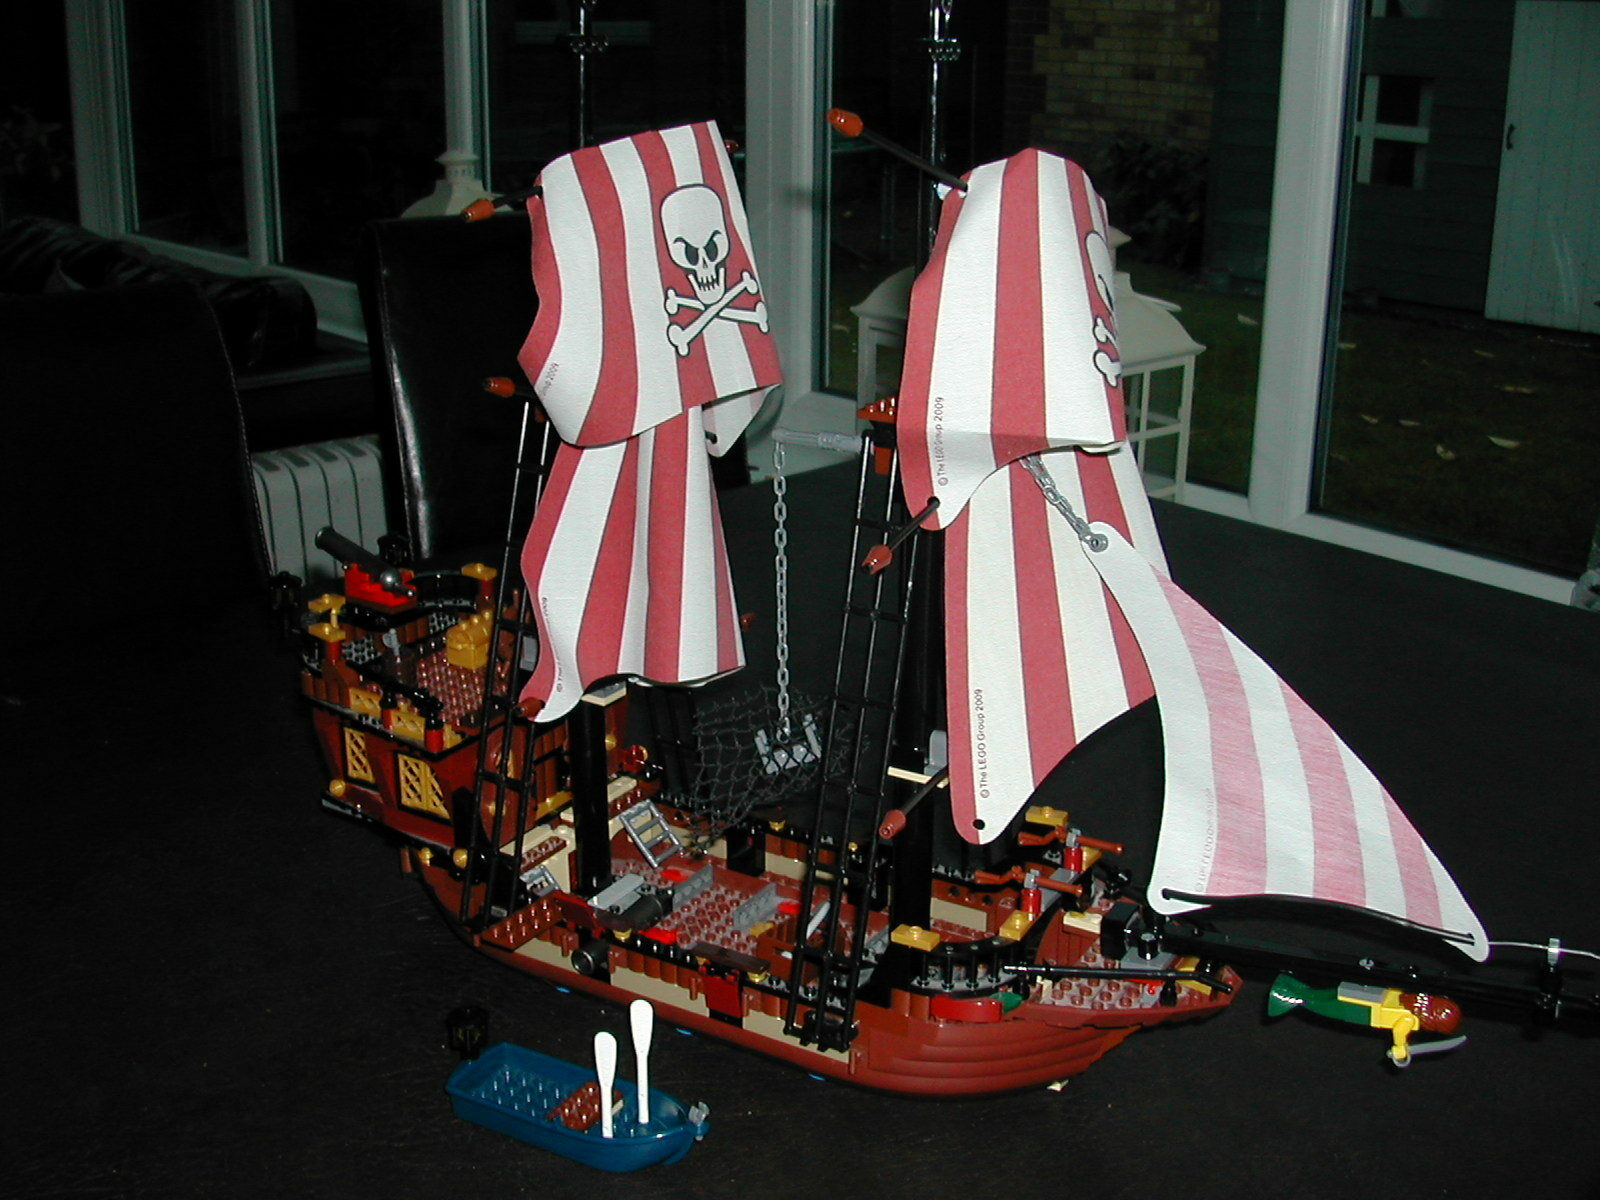 Lego Pirates 6243 with Original Instructions